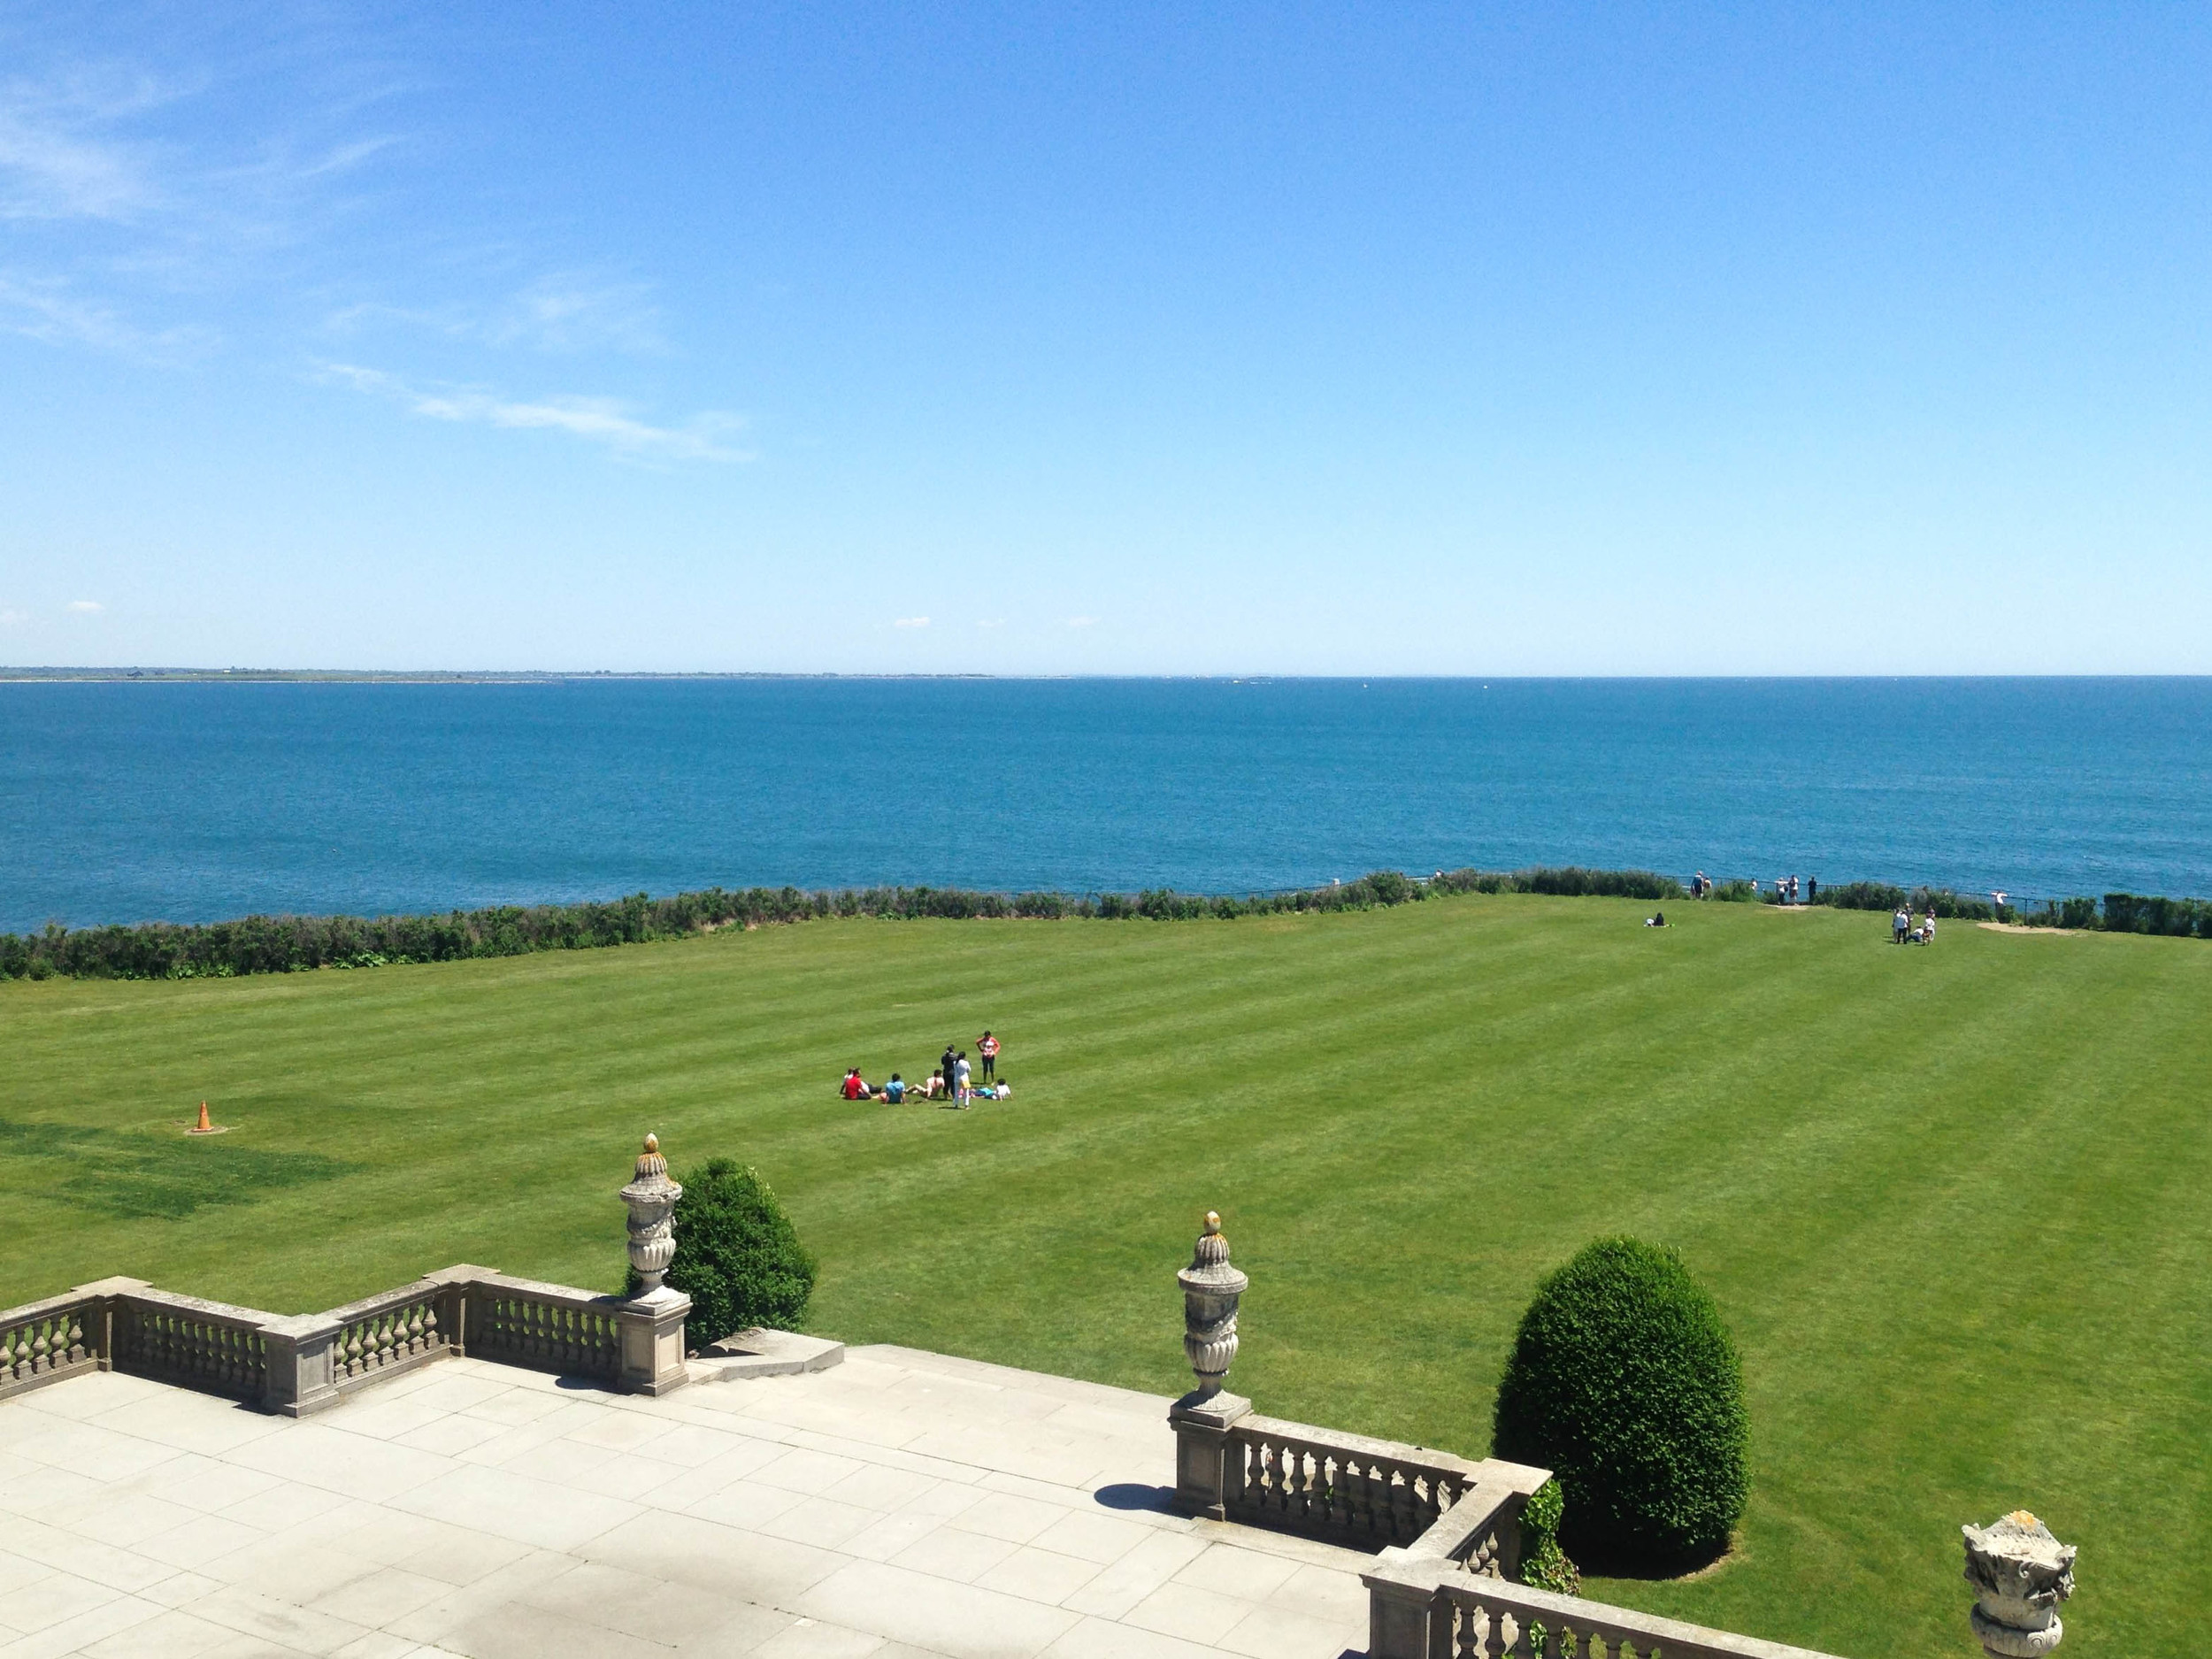 View from the second story of The Breakers